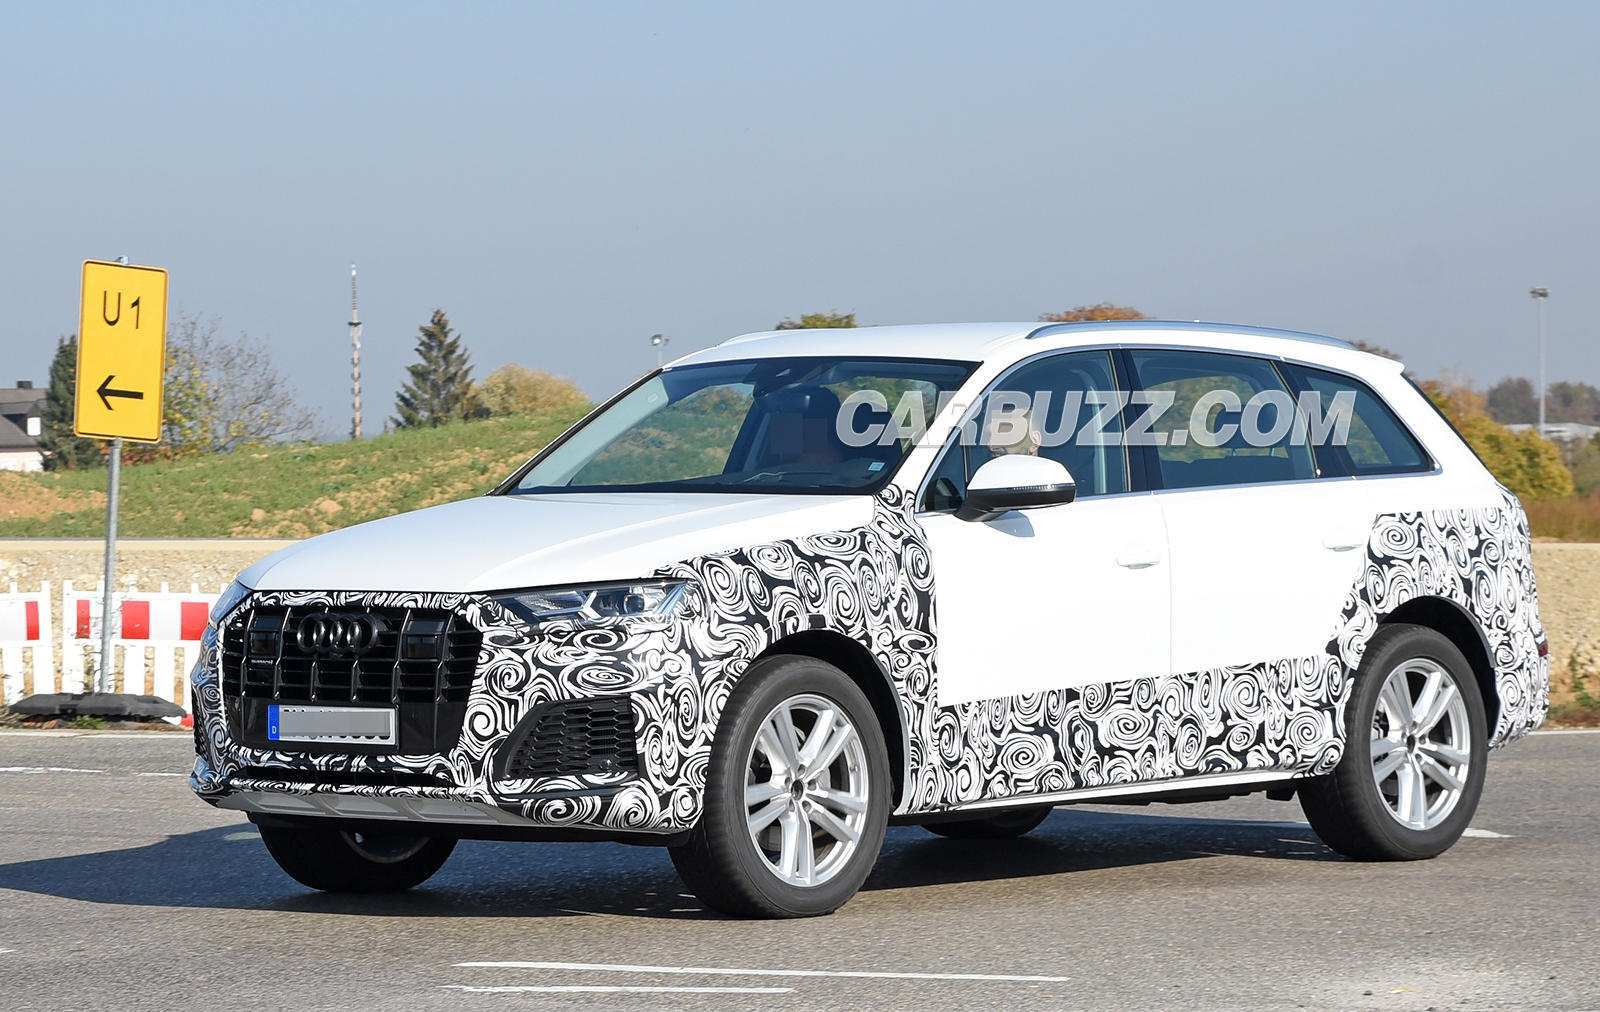 69 All New Audi Q7 2020 Update Release Date And Concept